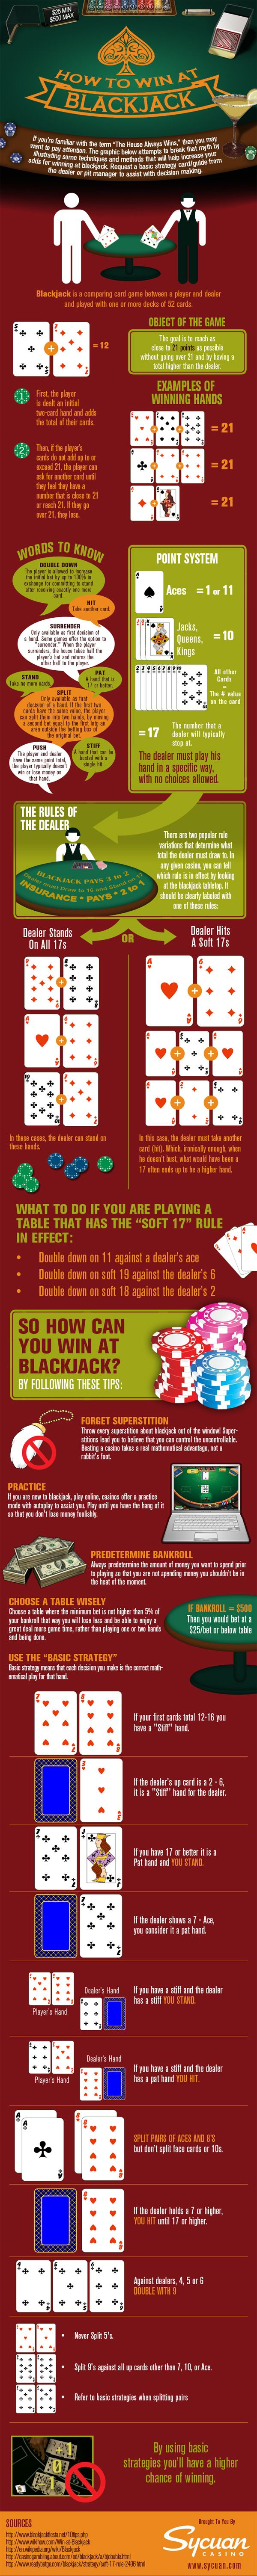 "If you're familiar with the term ""The House Always Wins,"" then you may want to pay attention. In the infographic below, Sycuan Casino attempts to break that myth by illustrating some techniques and methods that will help increase your odds of winning at blackjack."